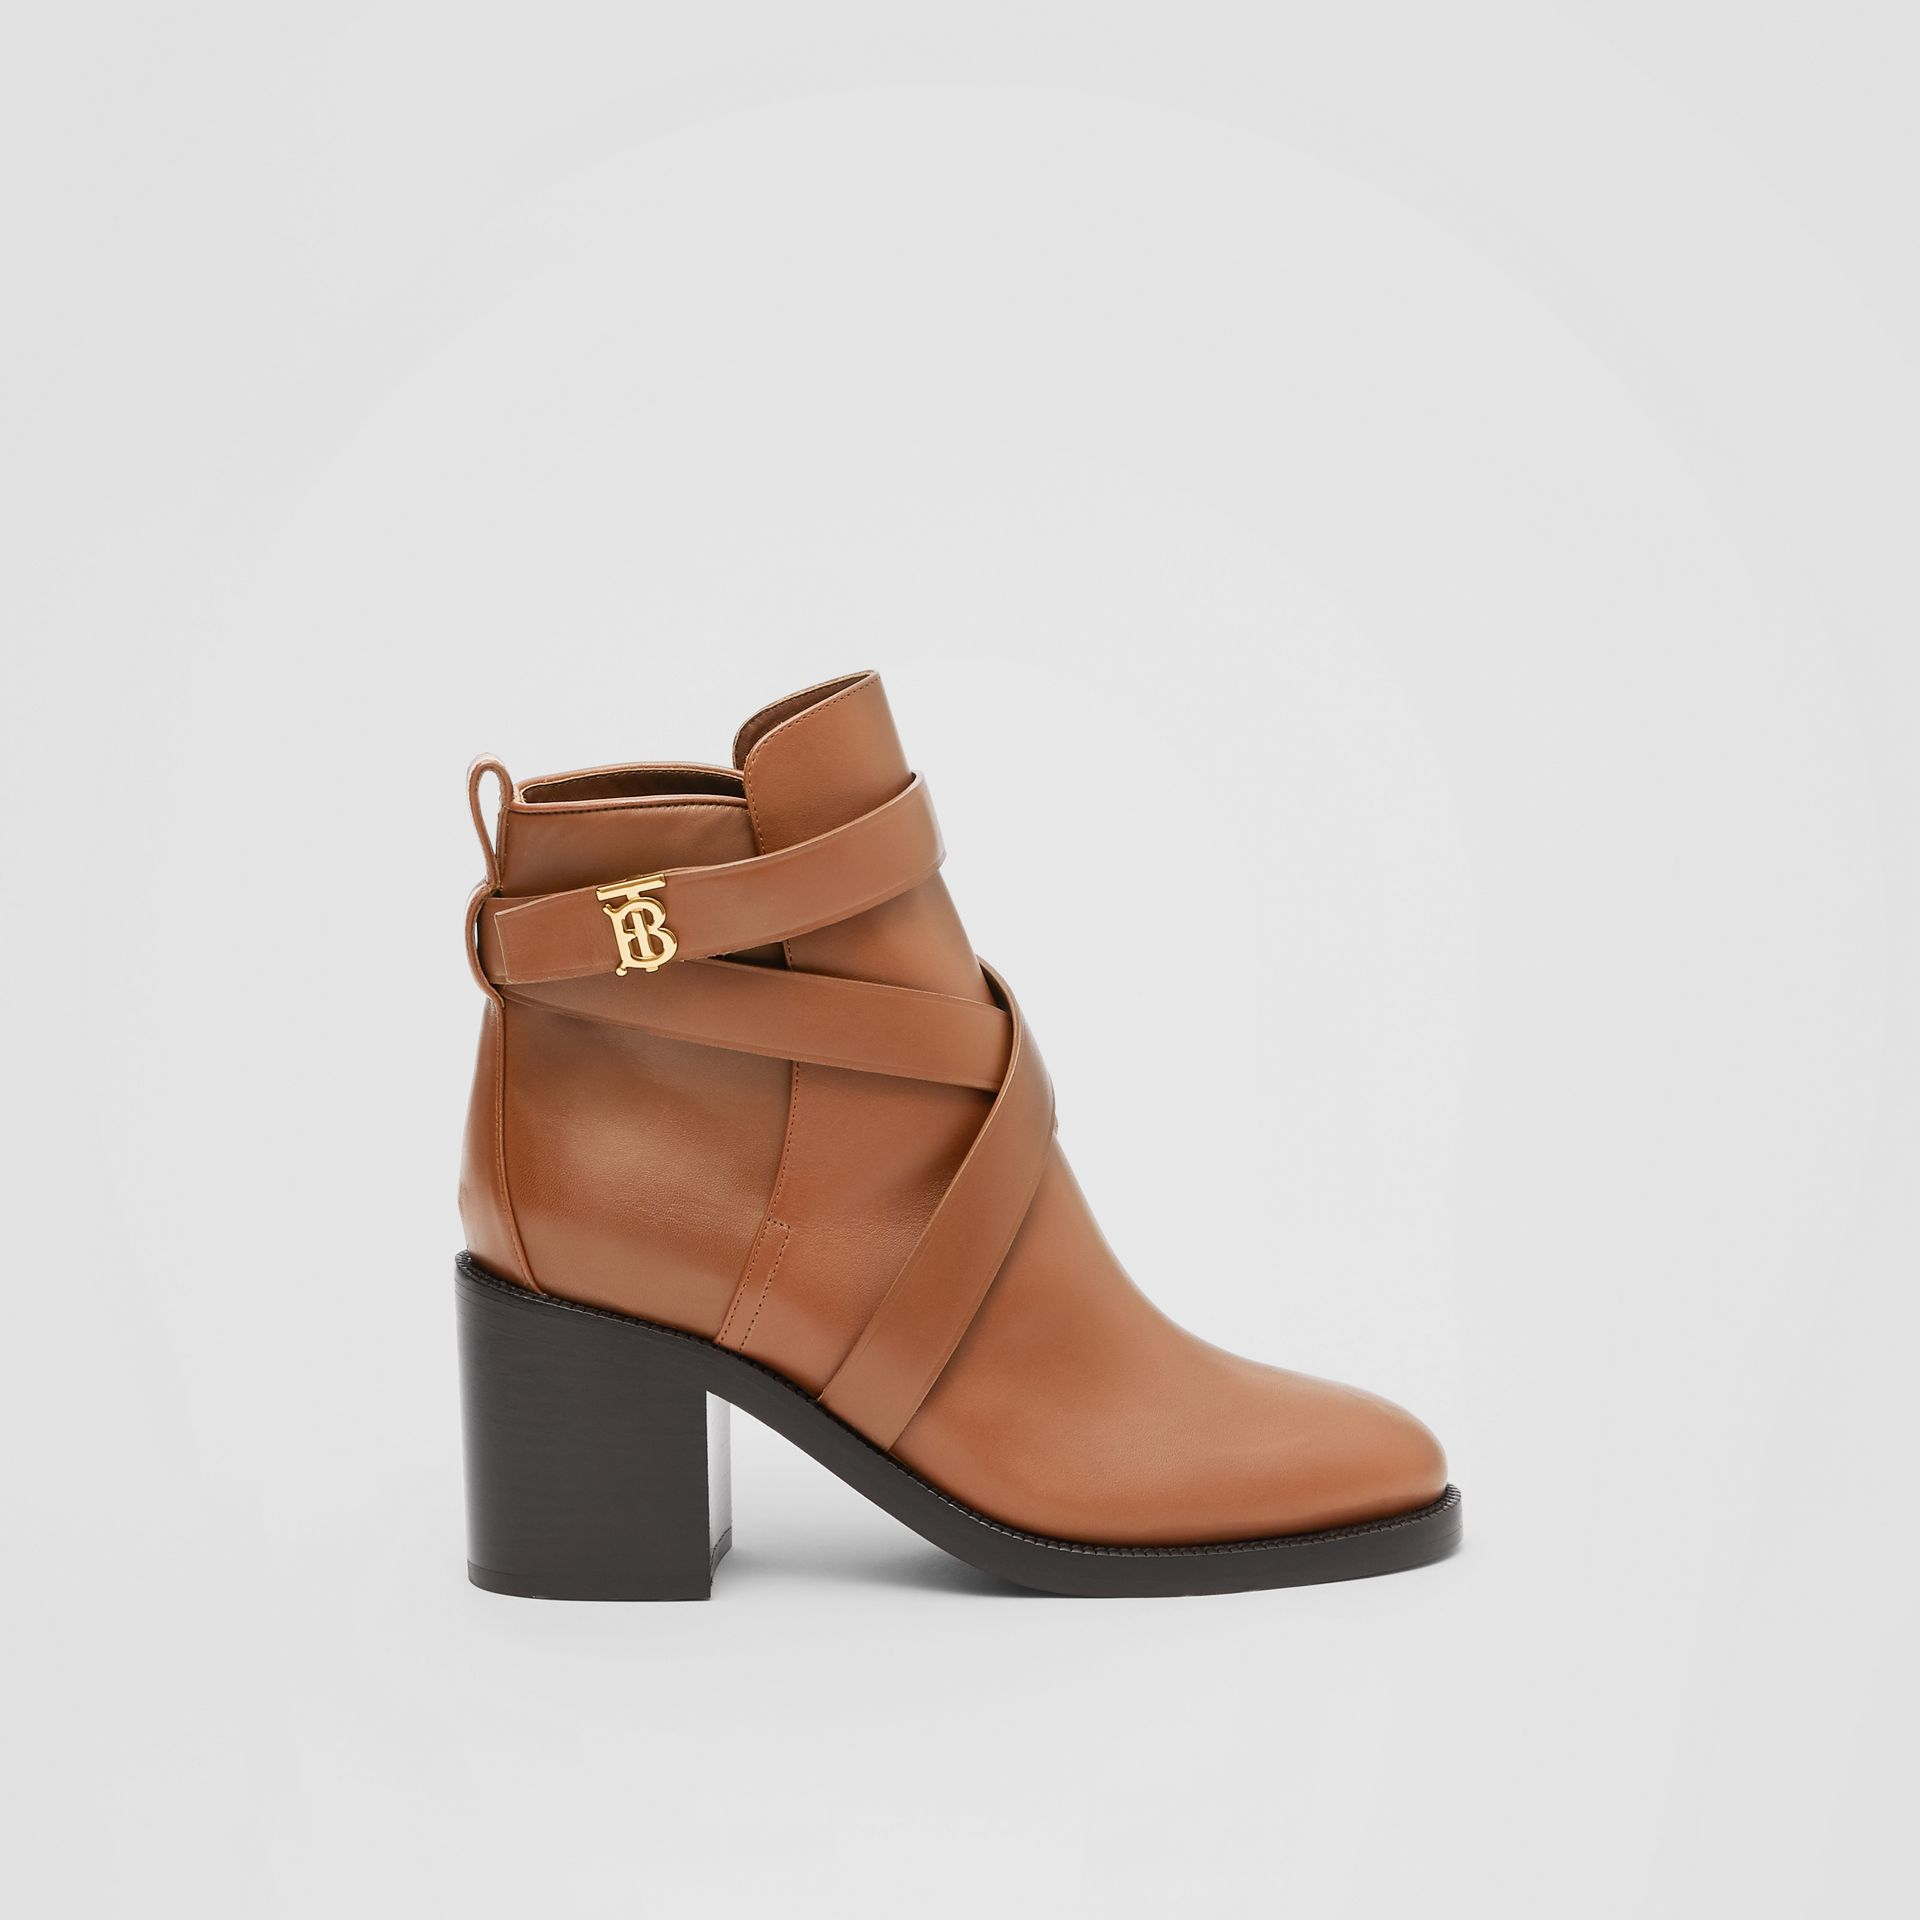 Bottines en cuir Monogram (Hâle) - Femme | Burberry Canada - photo de la galerie 4